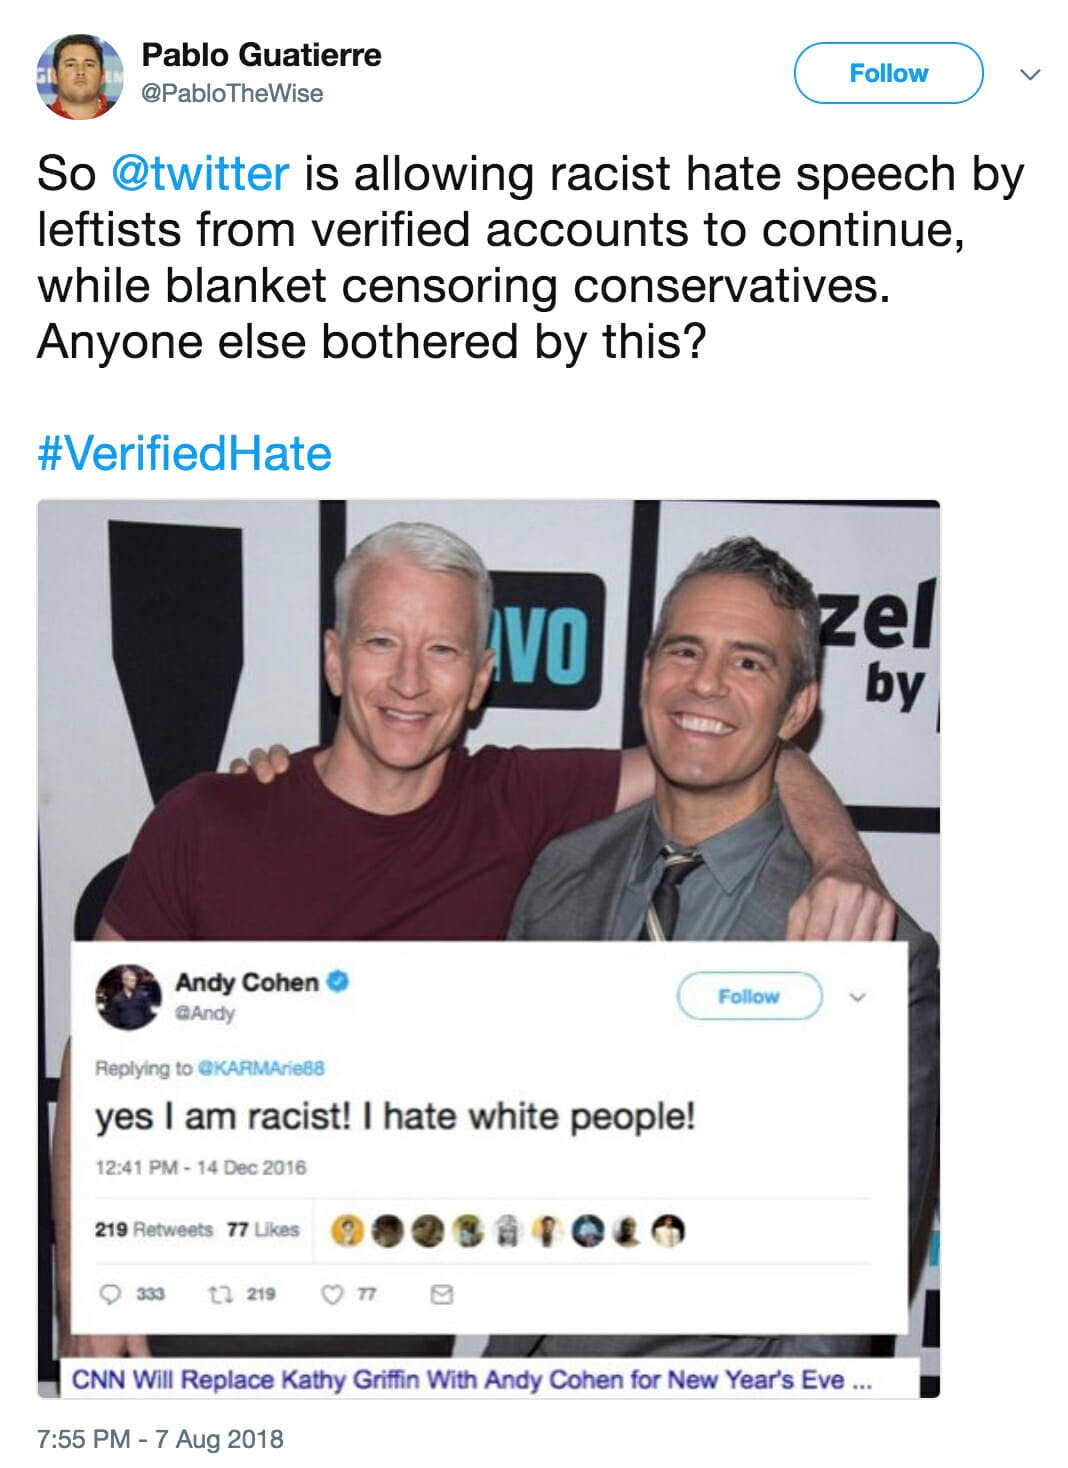 #VerifiedHate accuses verified liberal users of being racist.